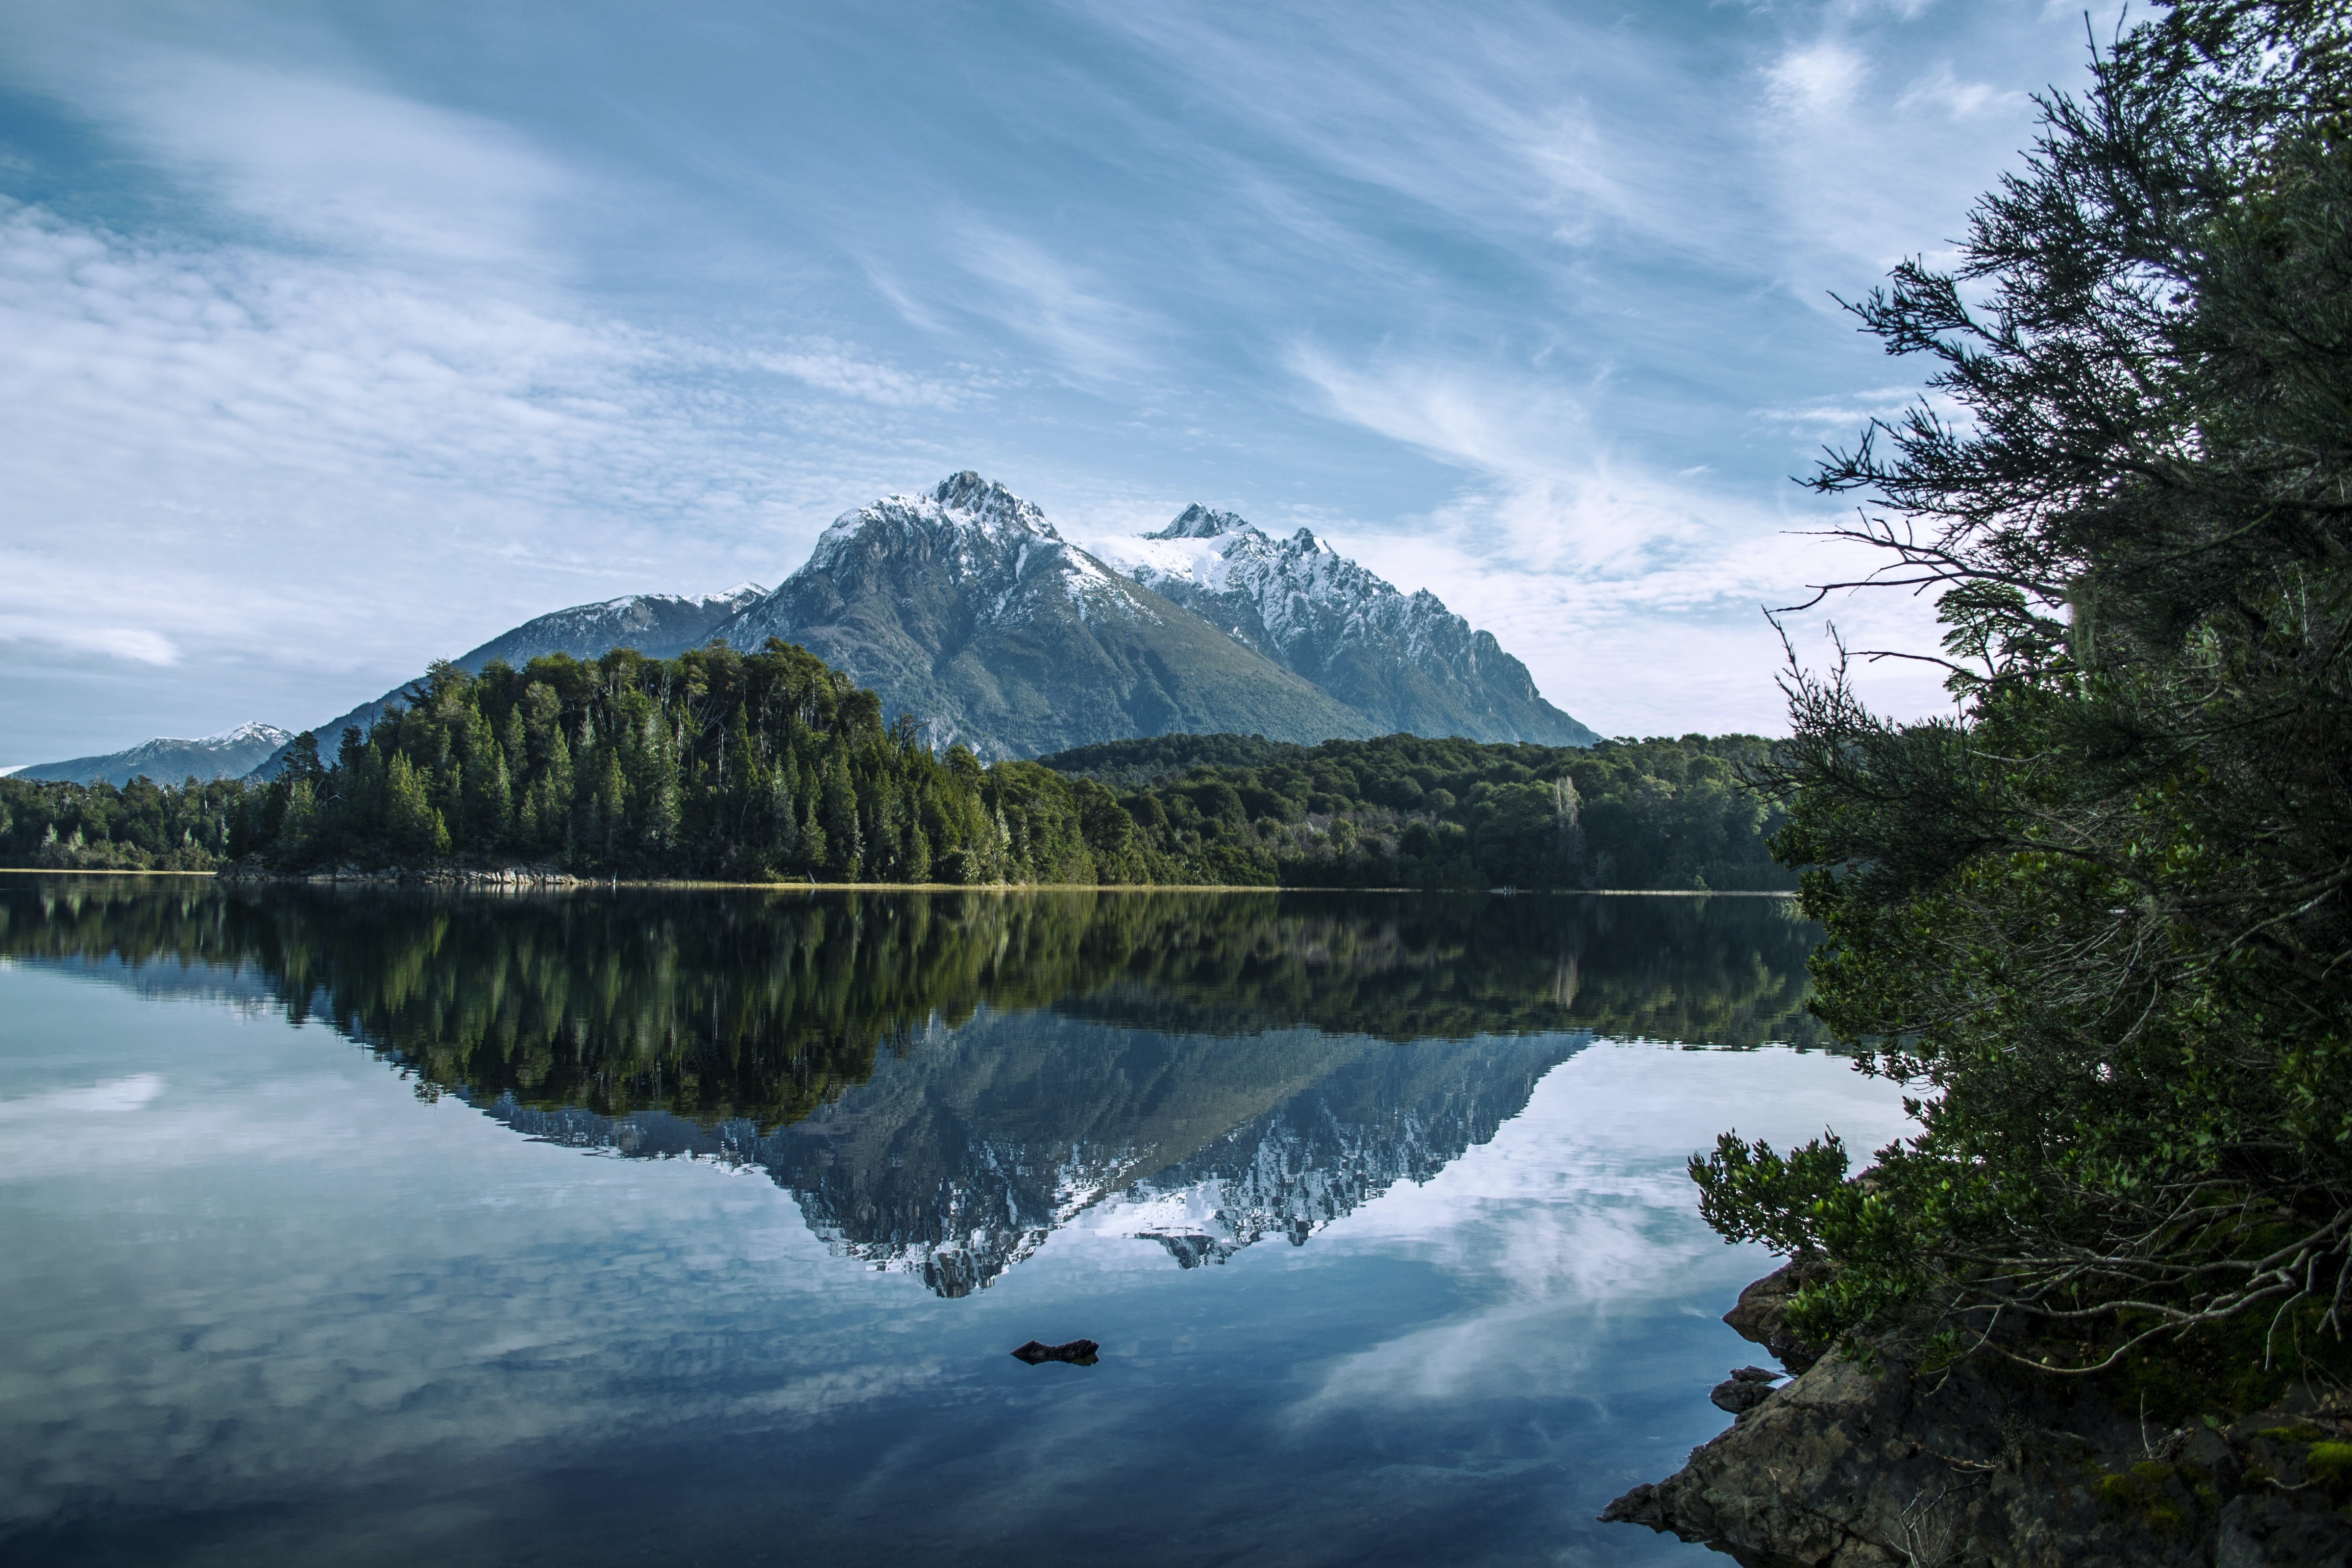 green trees and mountain reflecting on lake under cloudy sky